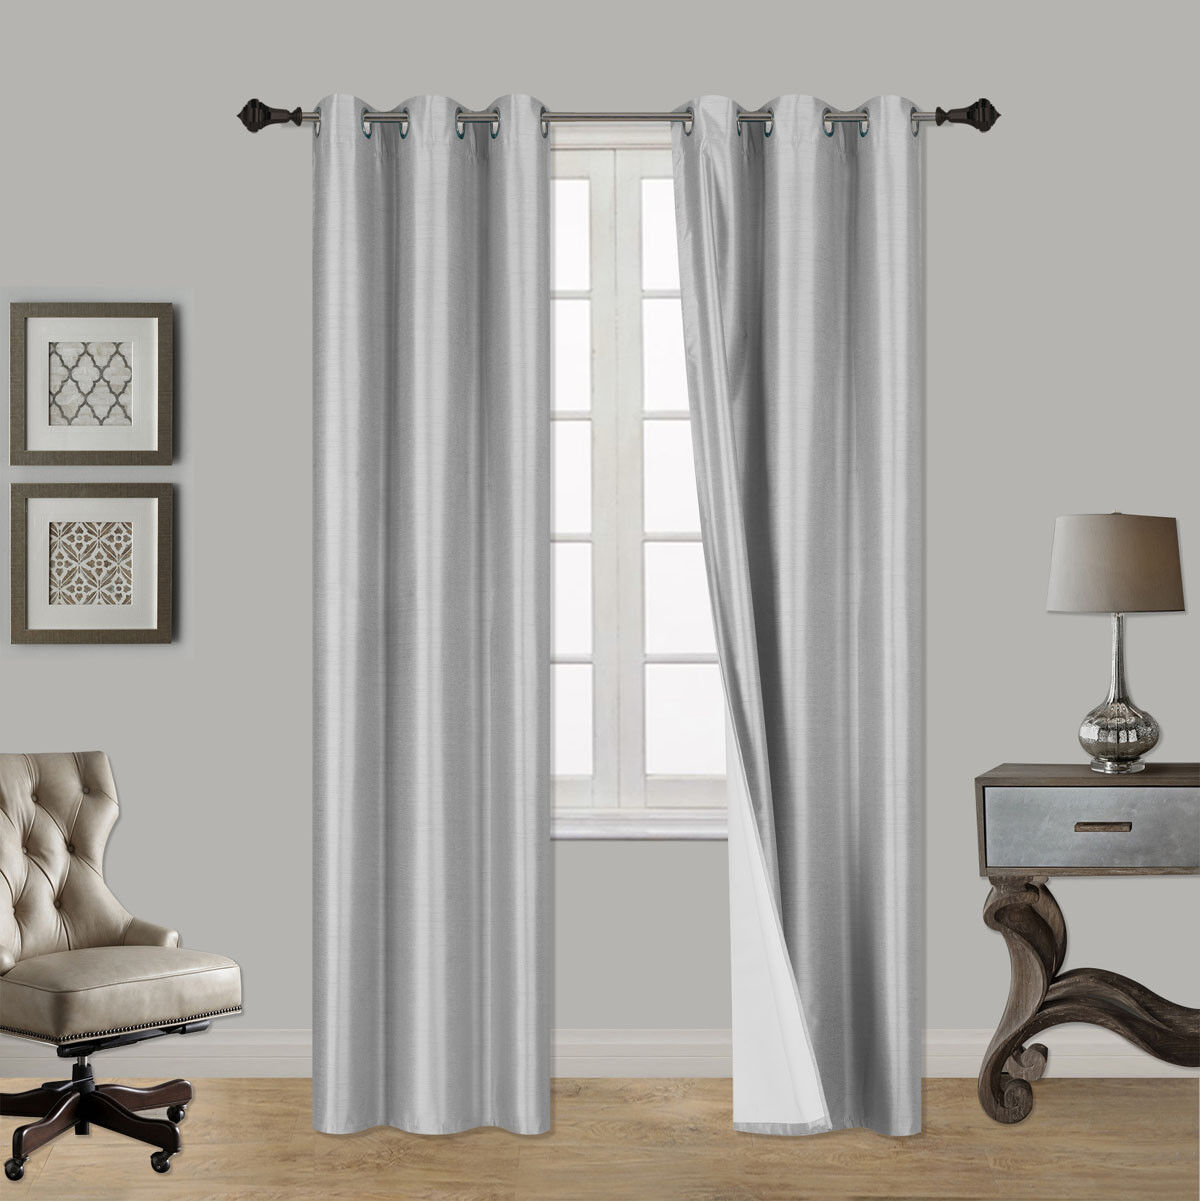 1 SET 100 THERMAL BLACK OUT WINDOW LINED CURTAIN PANEL DRAPE BRONZE GROMMET AAA